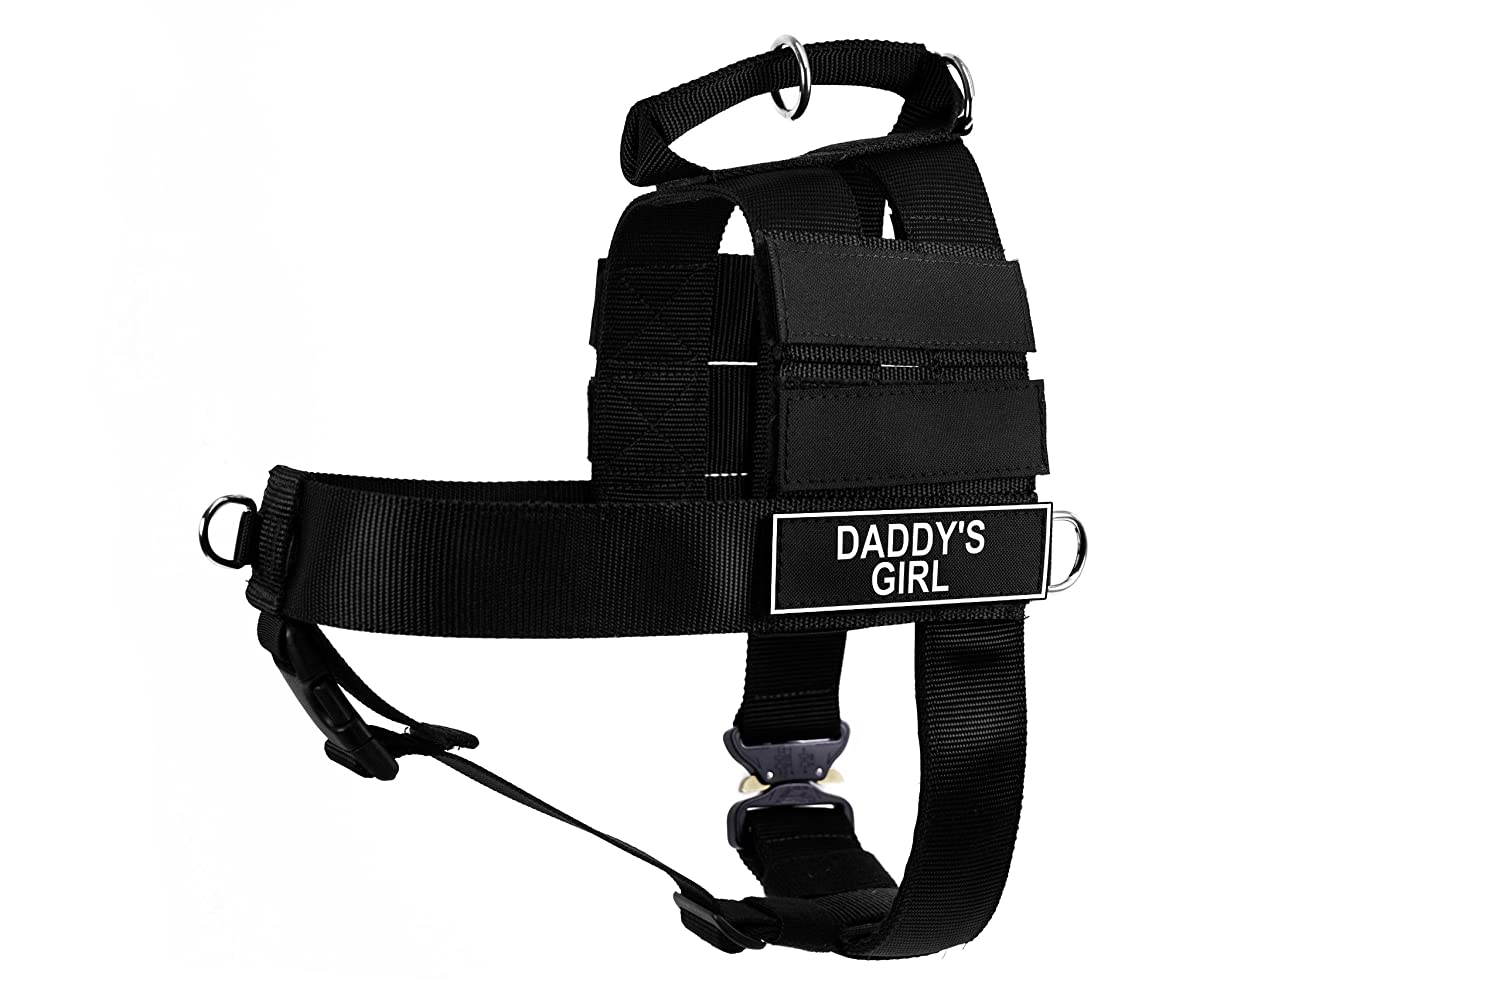 Dean & Tyler DT Cobra Daddy's Girl No Pull Harness, Small, Black